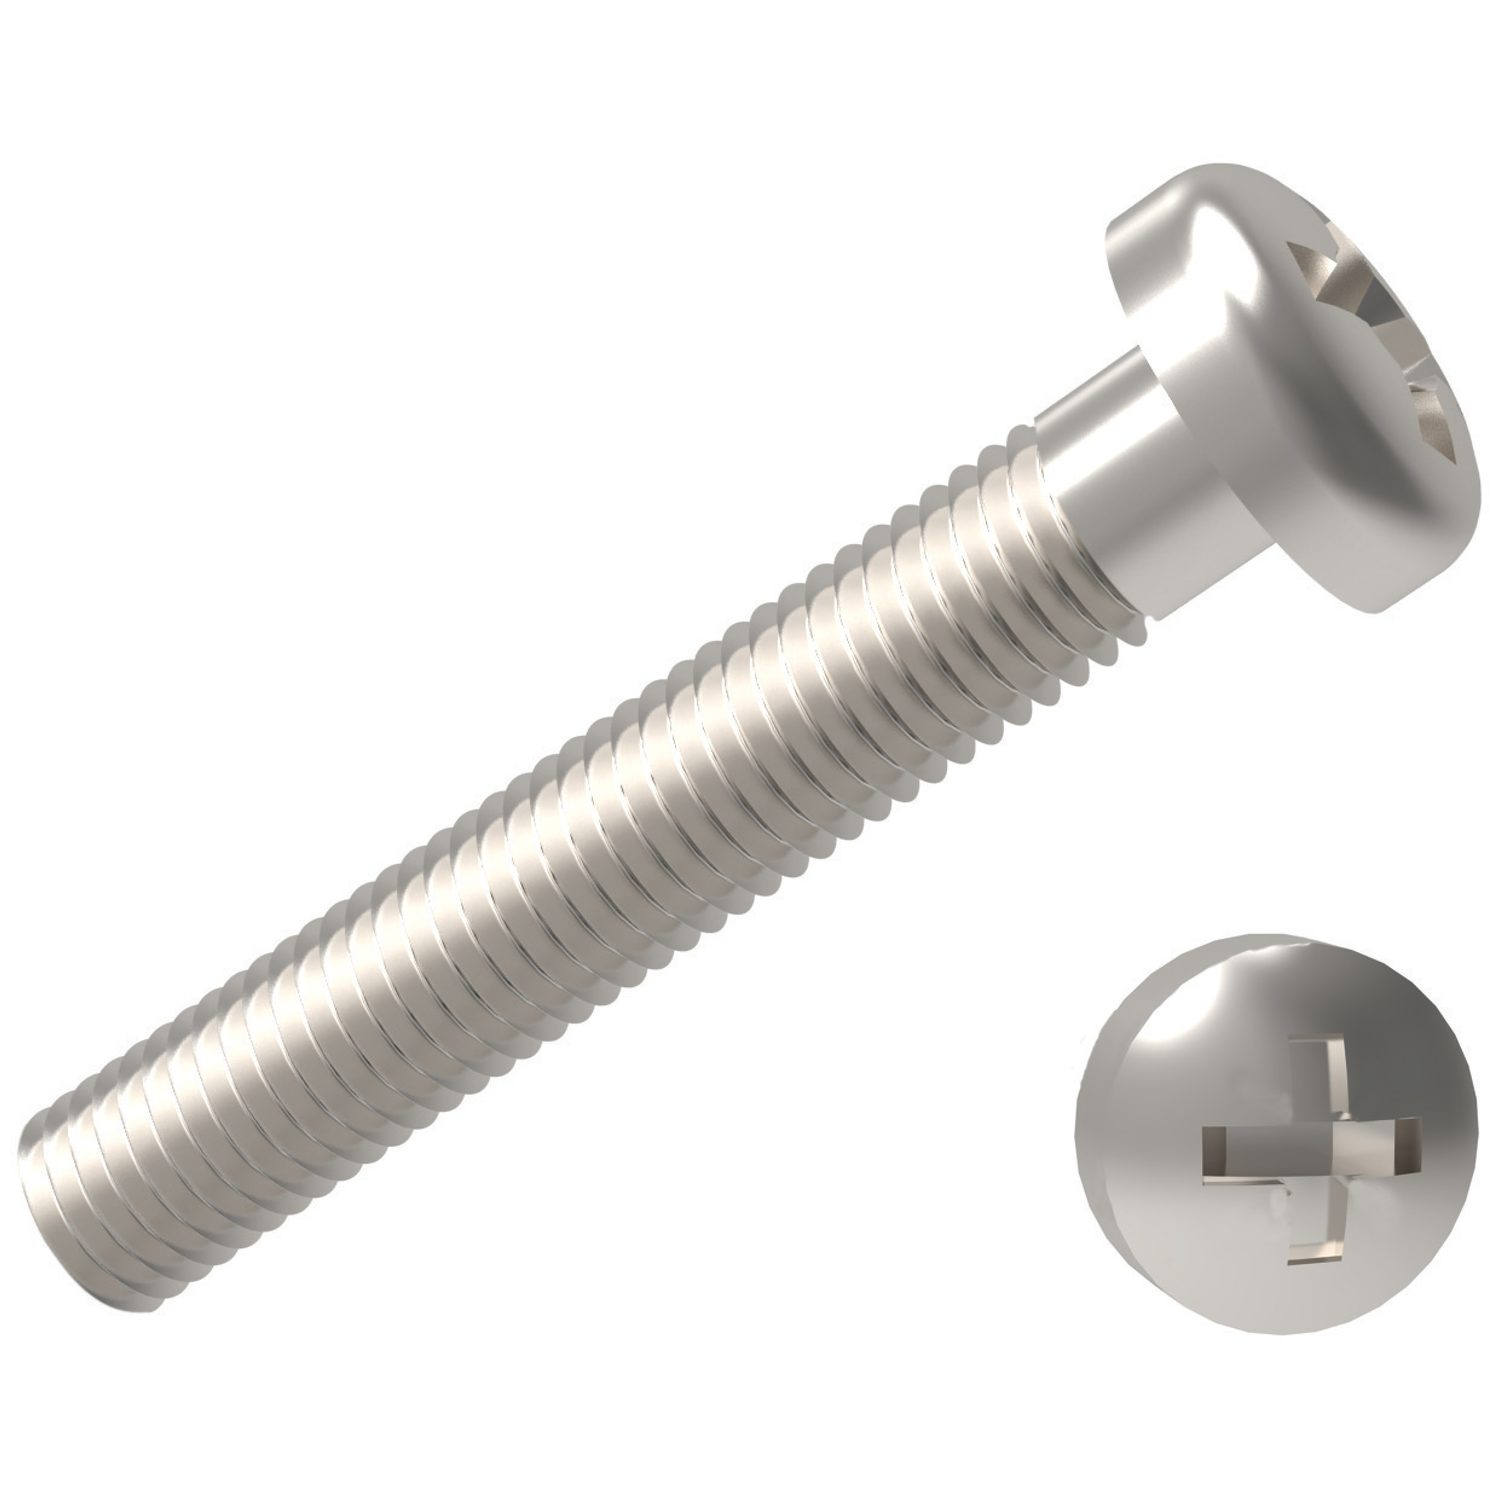 Product P0234.A2, Phillips Pan Head Screws Phillips - A2 stainless /